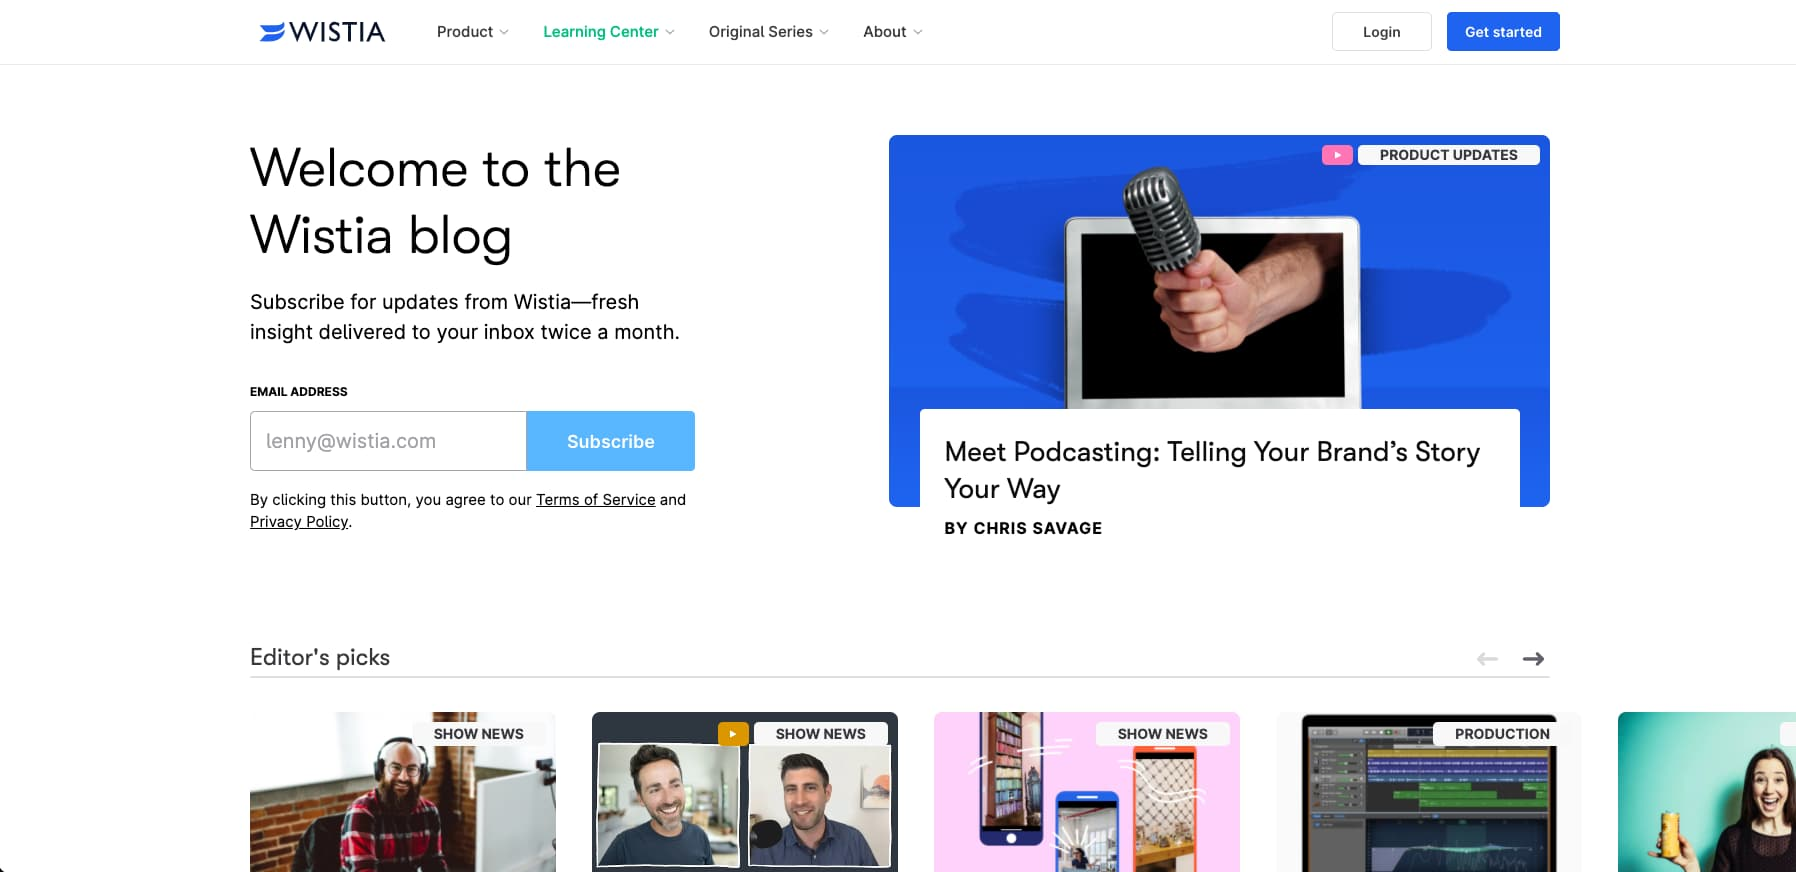 Wistia has has a great blog layout design with a variety of design blocks, clean fonts, negative space and a focus on vivid imagery